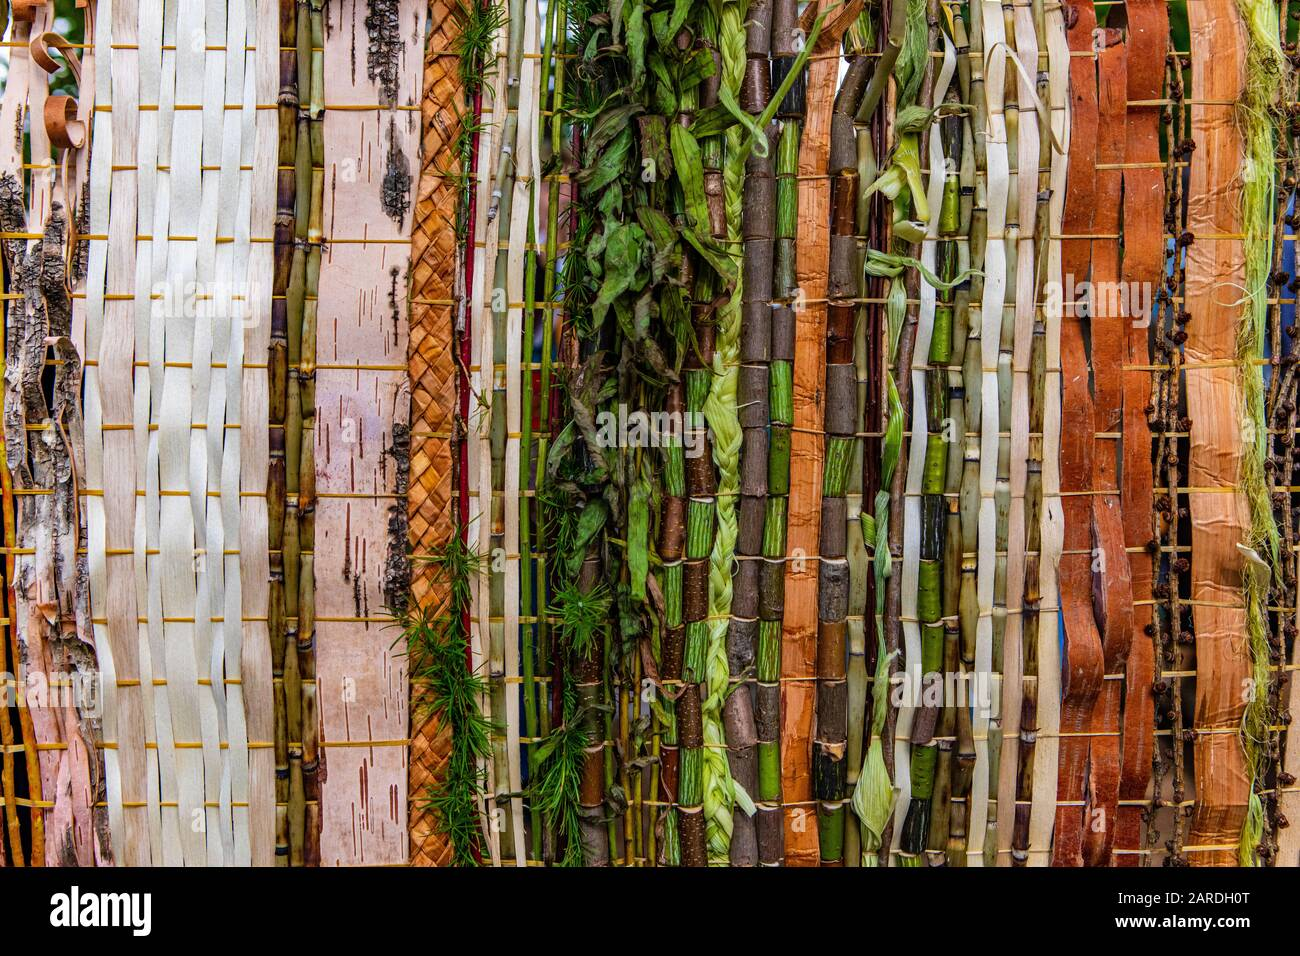 decor split bamboo fencing outdoor decorations.htm bamboo strips stock photos   bamboo strips stock images page 3  bamboo strips stock photos   bamboo